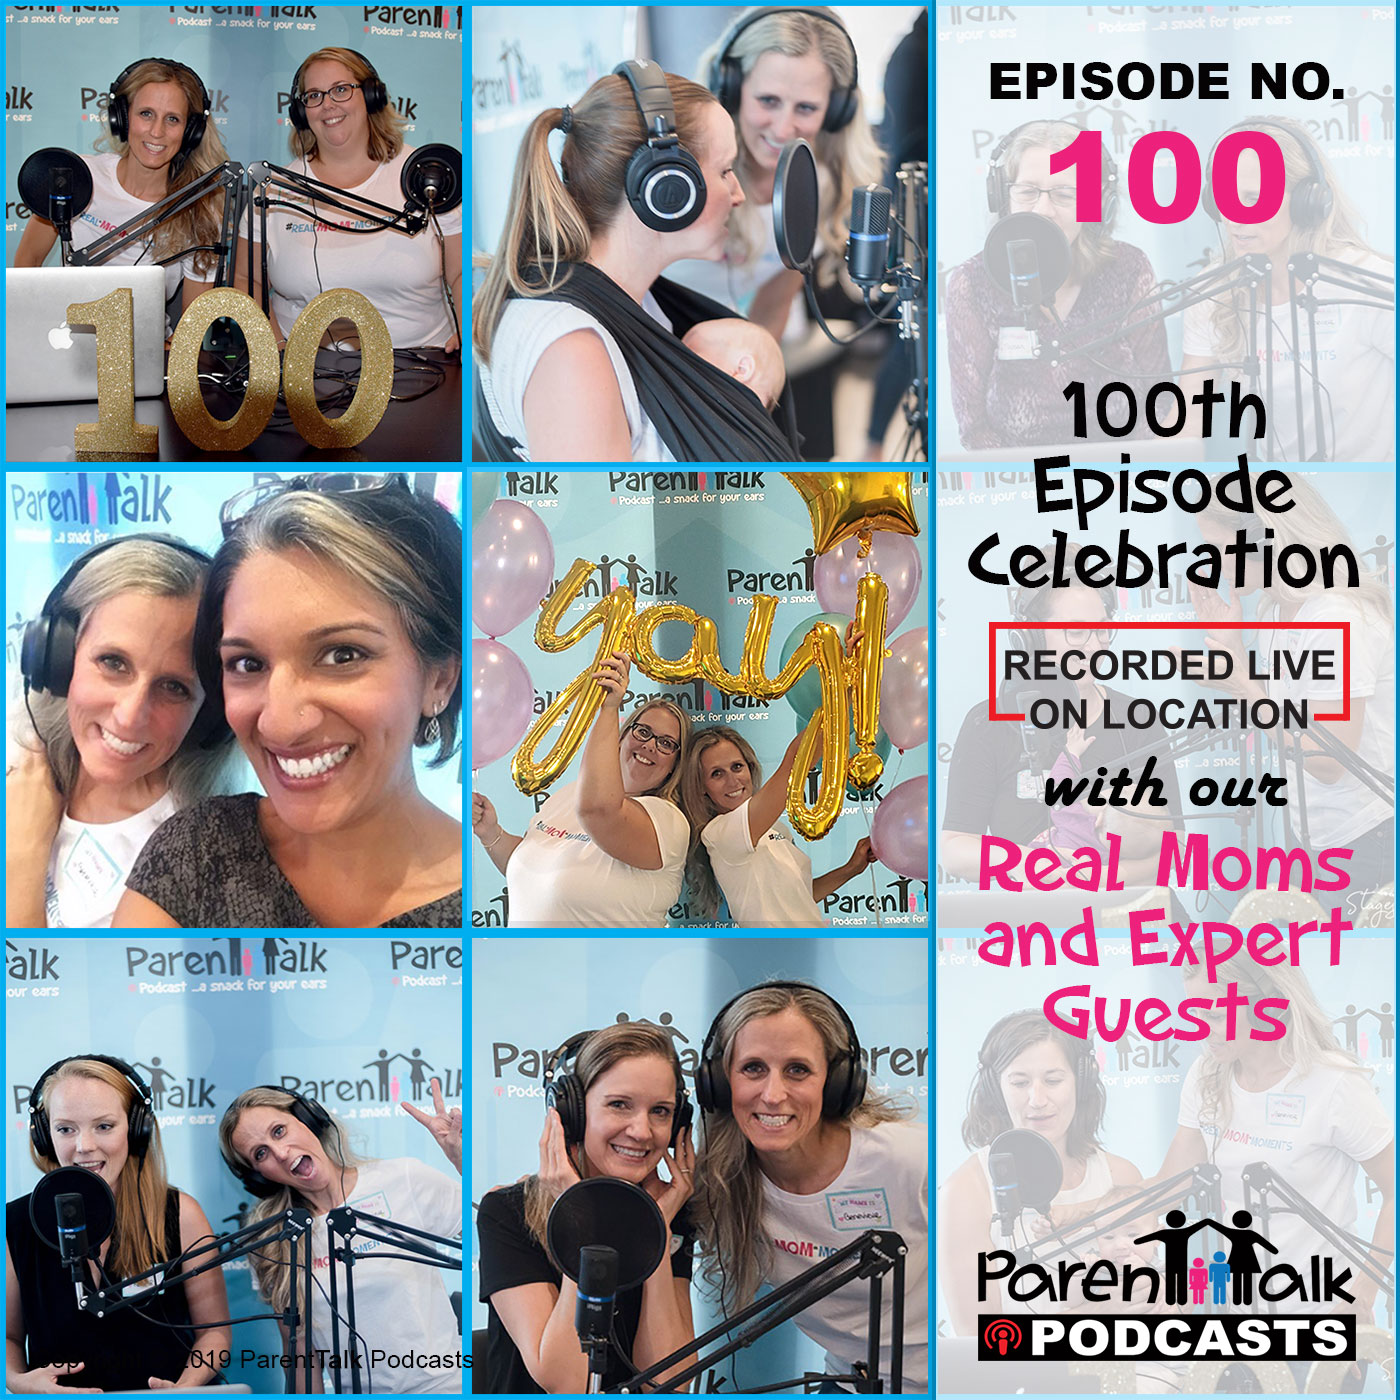 E100 - Real Mom Moments - 100th Episode Celebration ...